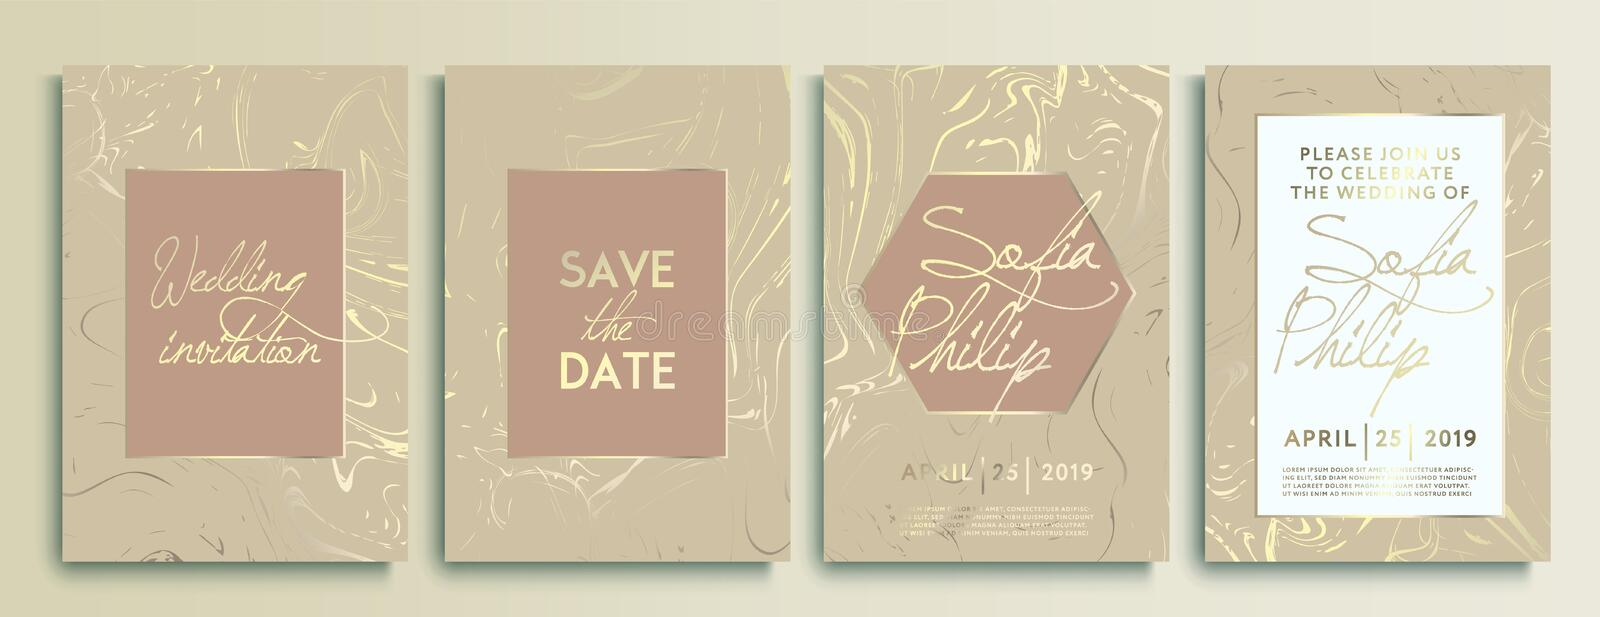 Wedding invitation cards with marble texture background and gold geometric line design vector. Wedding invitation frame set.  vector illustration